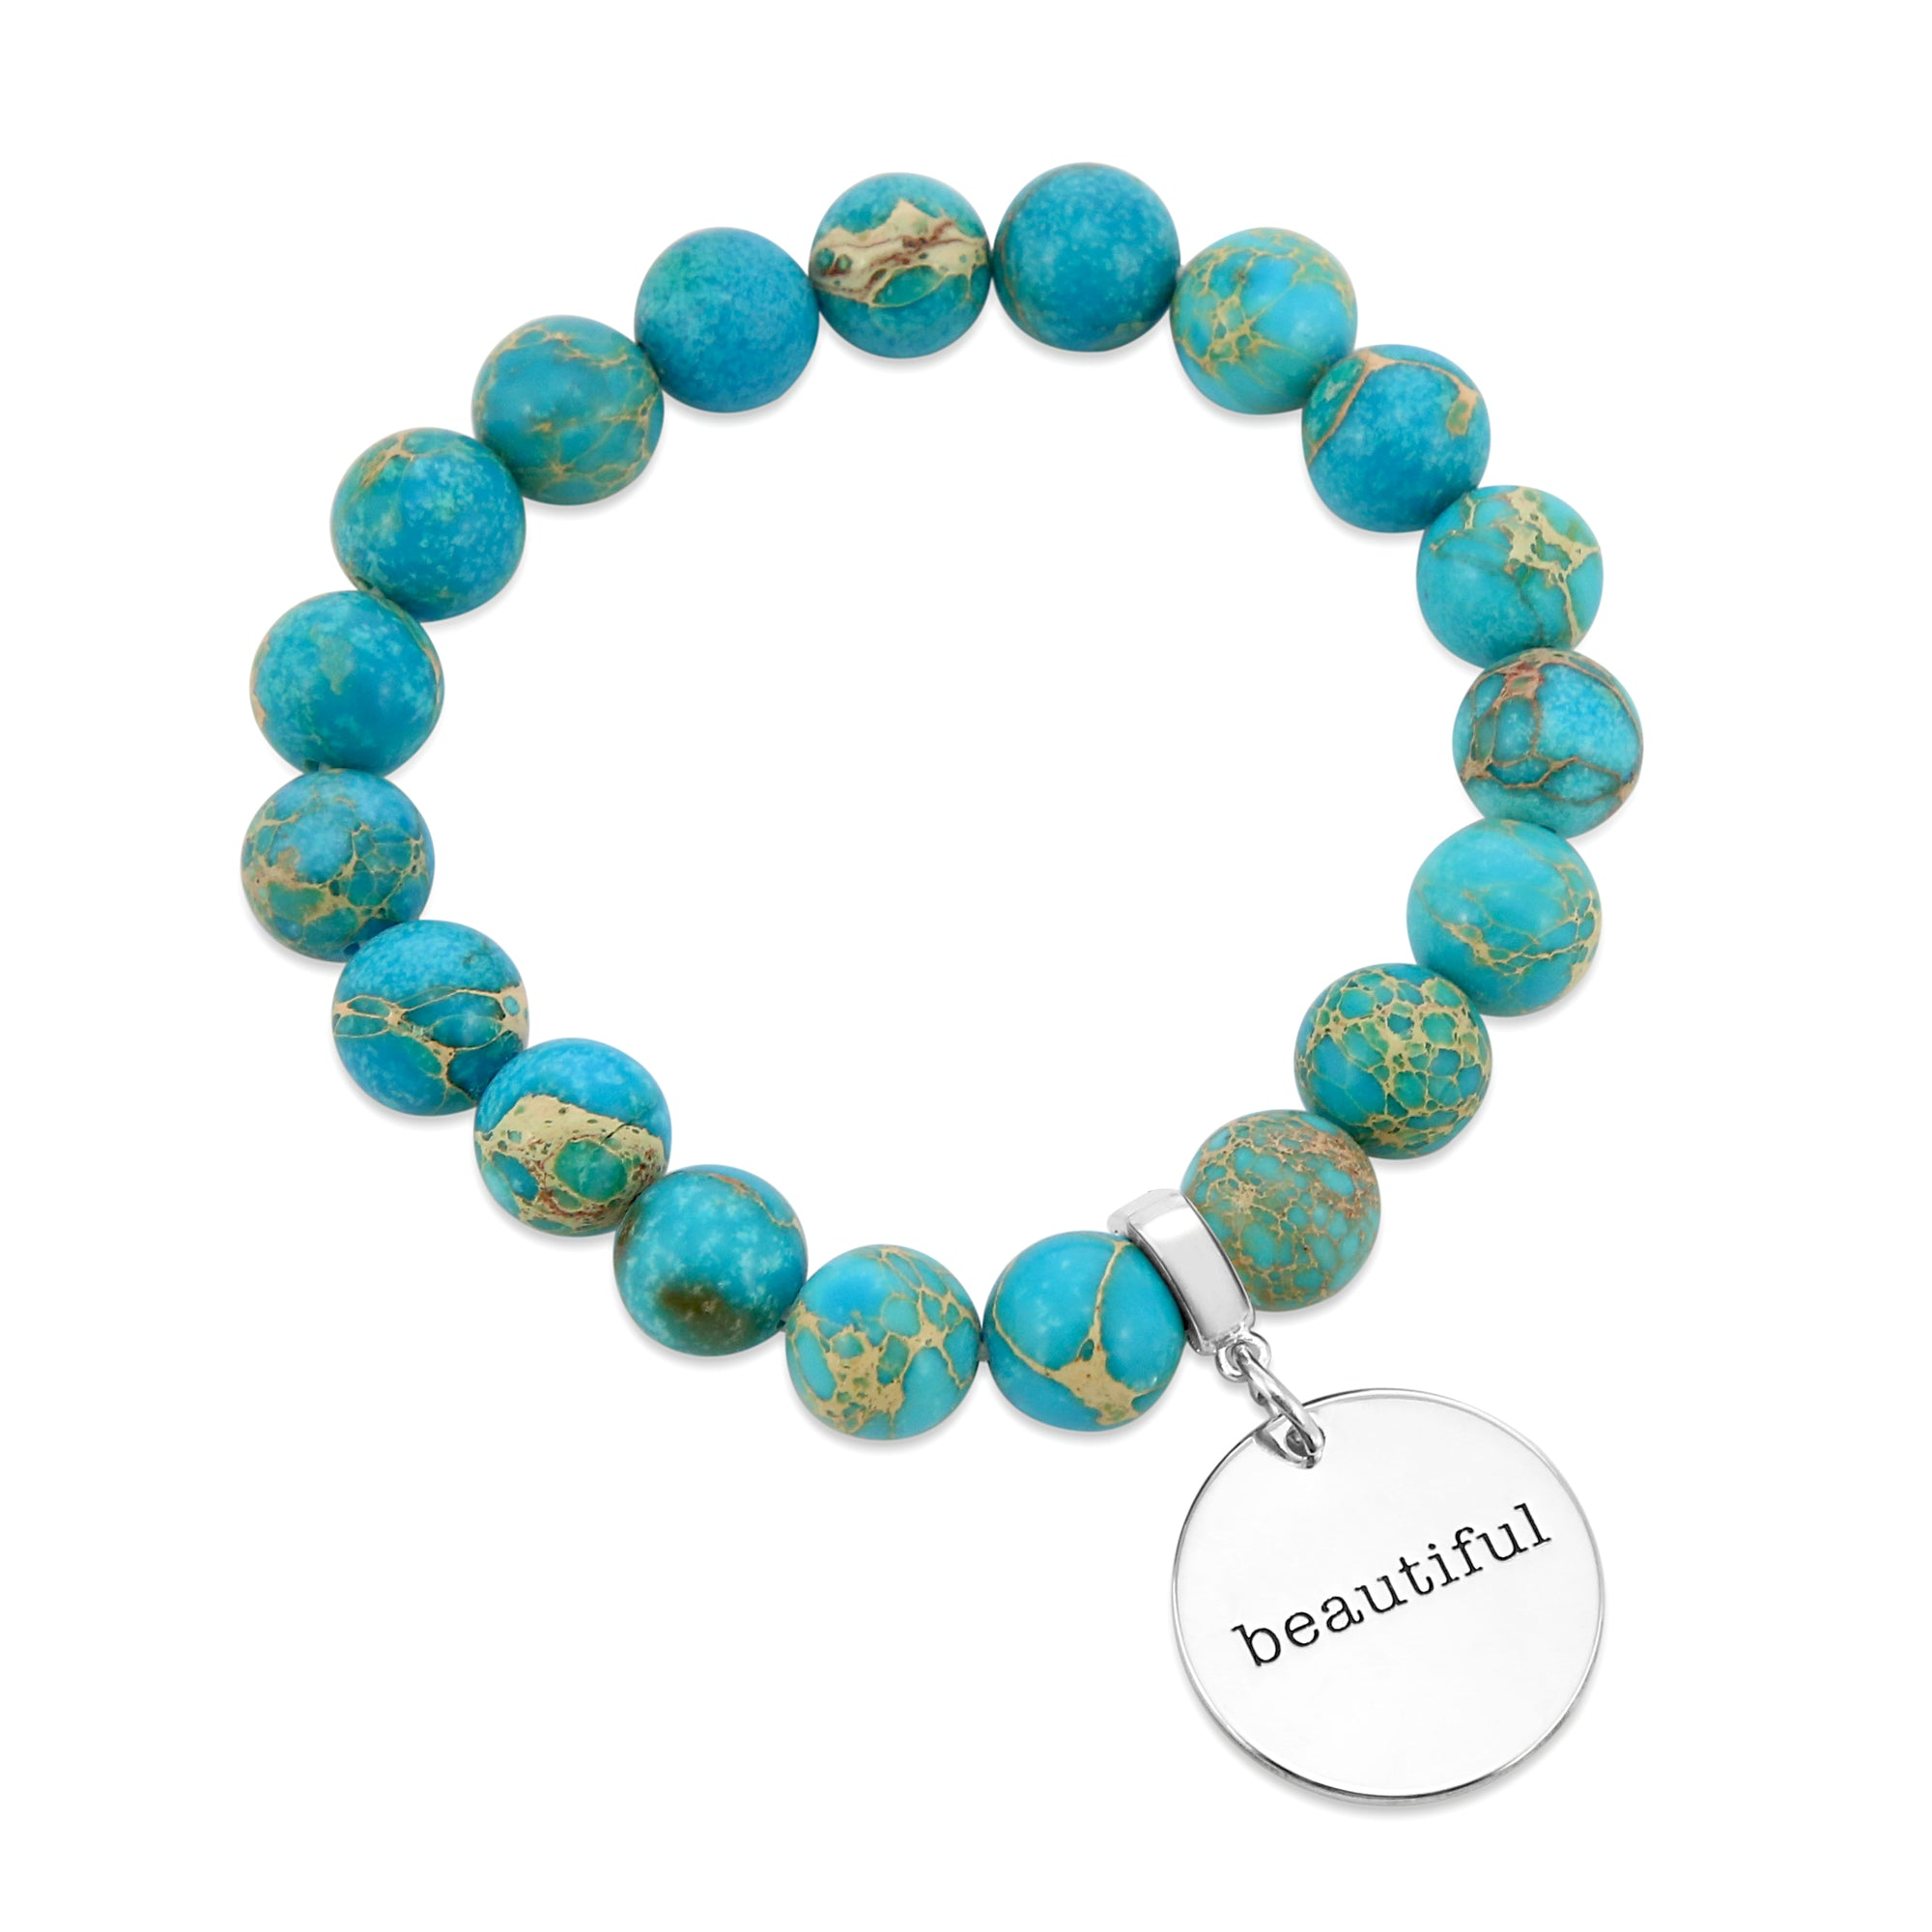 Precious Stone Bracelet ' BEAUTIFUL ' Imperial Jasper 10MM BEADS - Lagoon (5003-7)